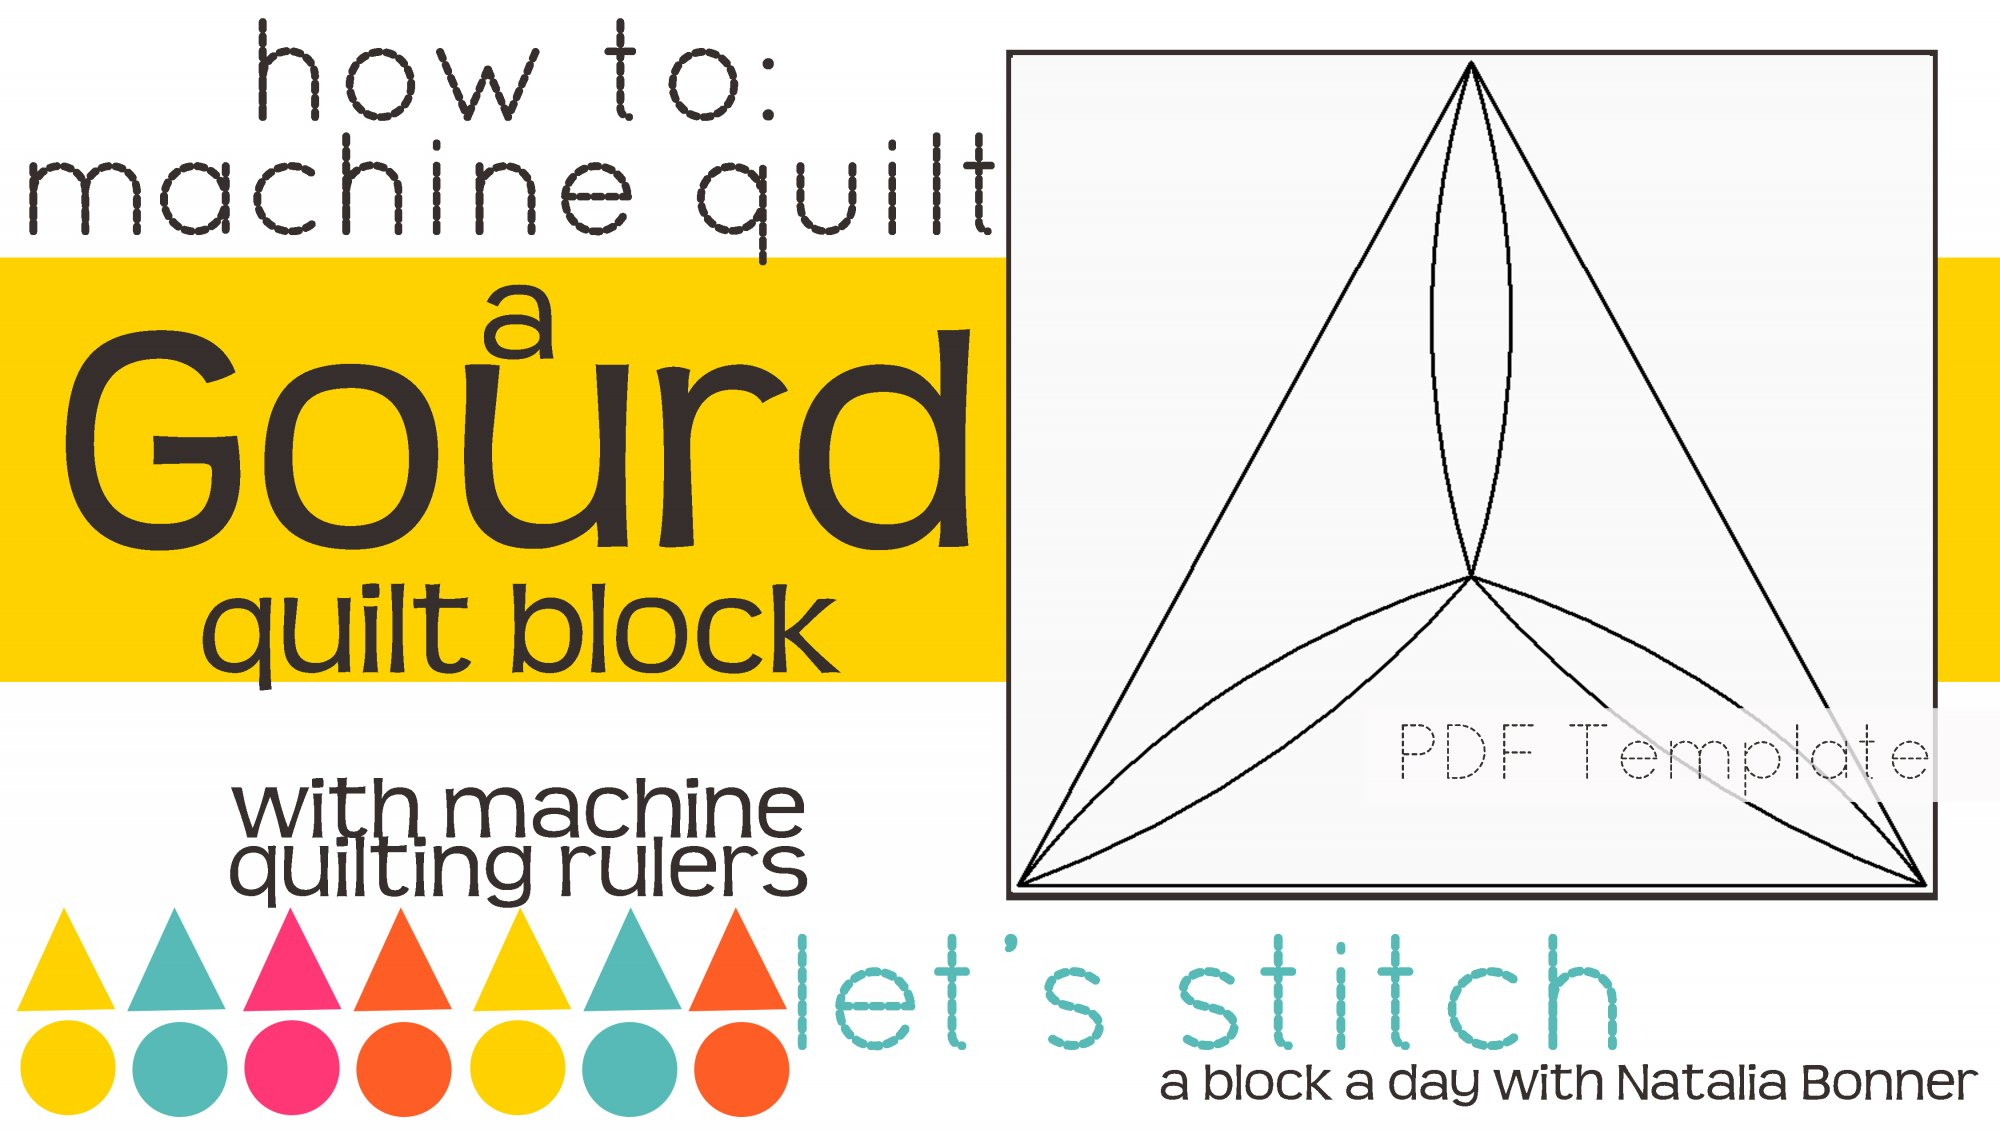 Let's Stitch - A Block a Day With Natalia Bonner - PDF - Gourd